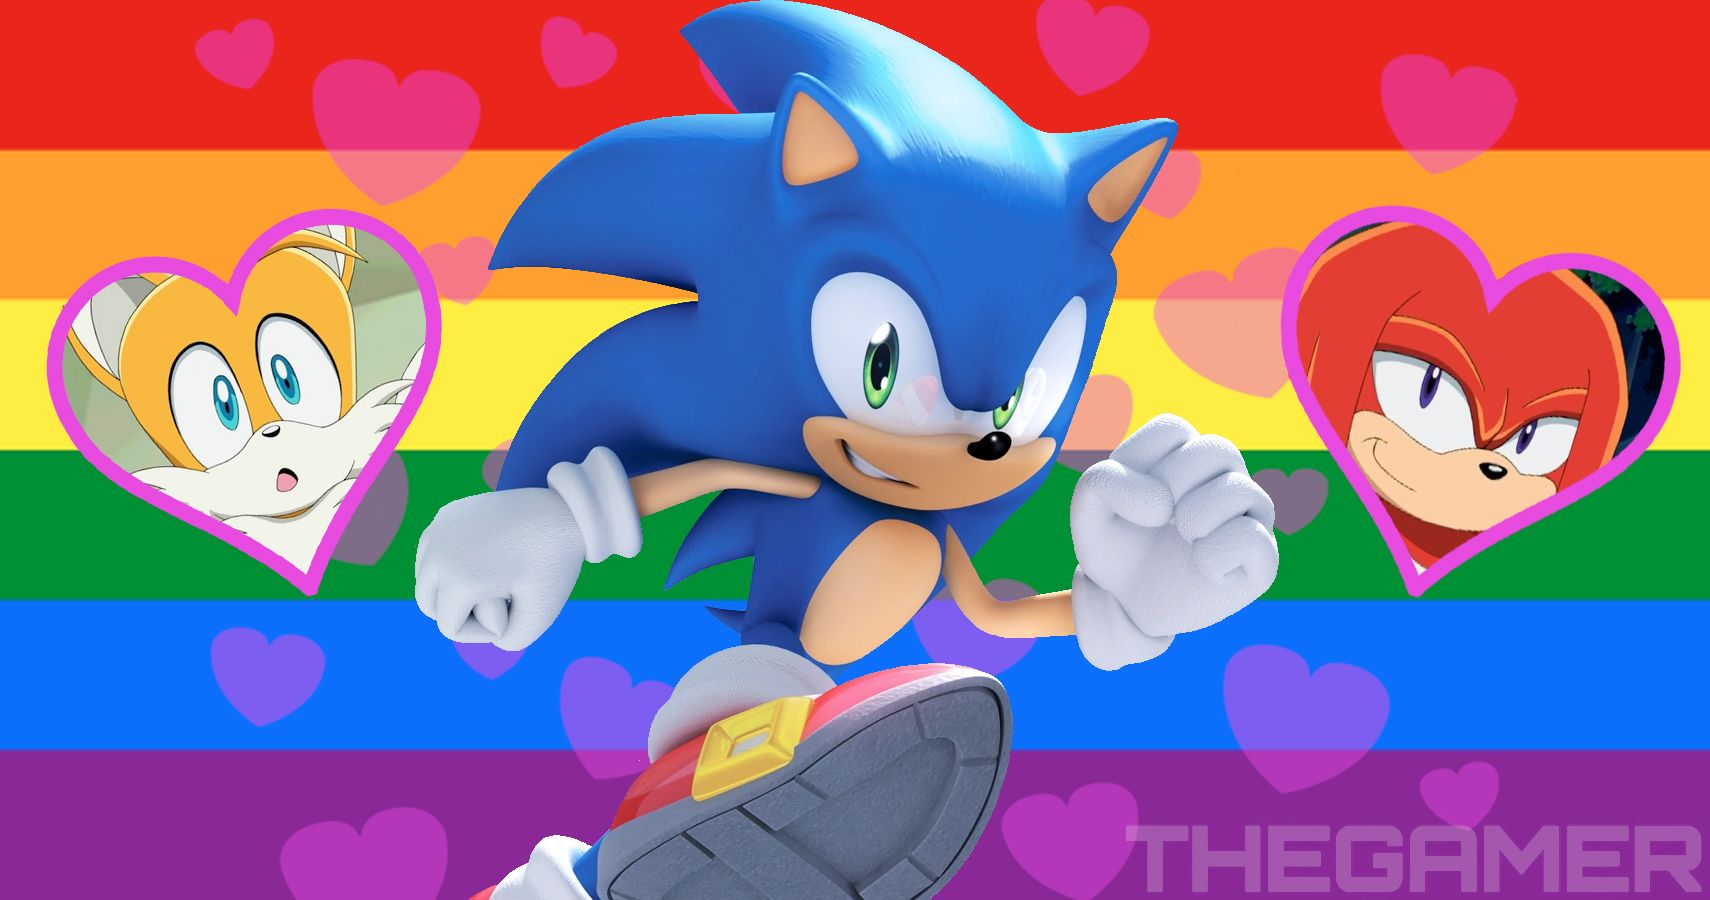 Why We Think Sonic Should And Will Be Gay Thegamer